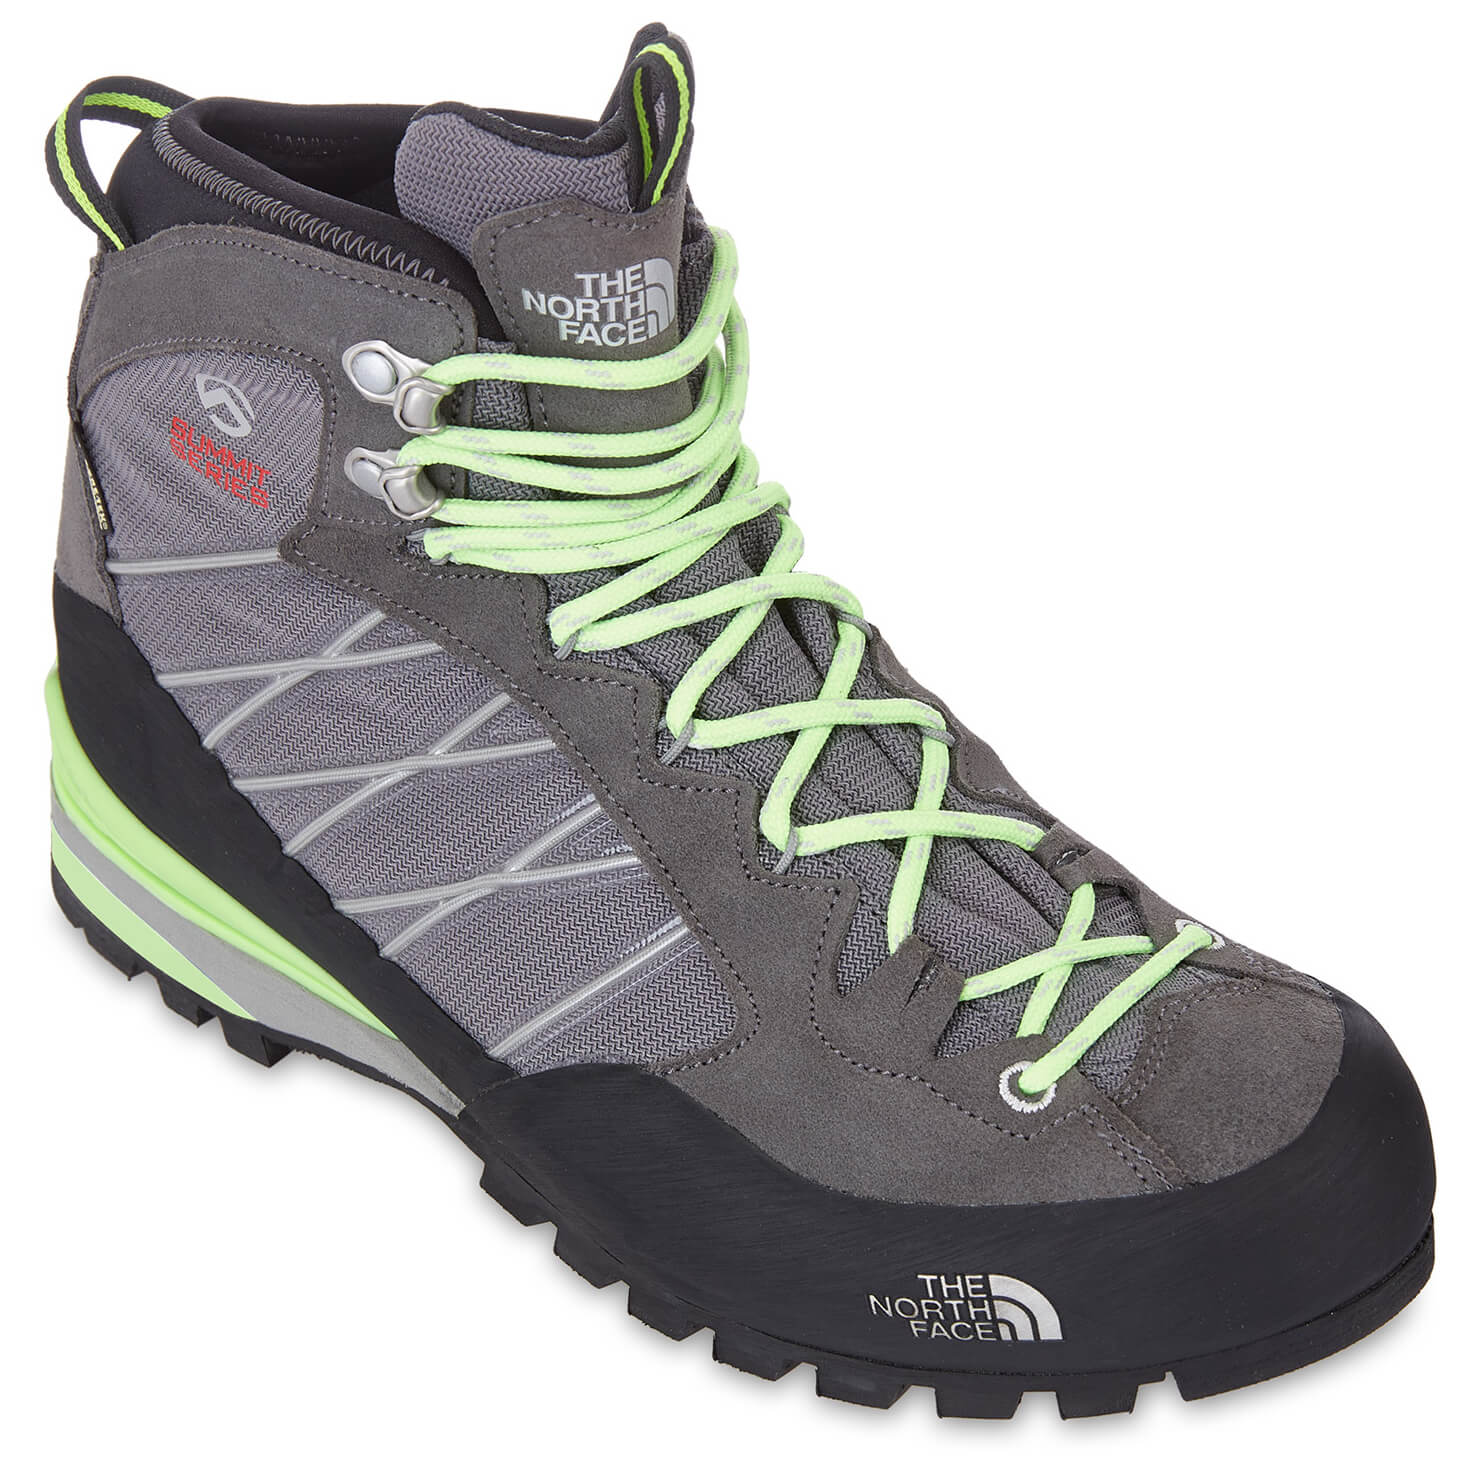 33d809a8dd8 ... The North Face - Verto S3K GTX - Approach shoes ...